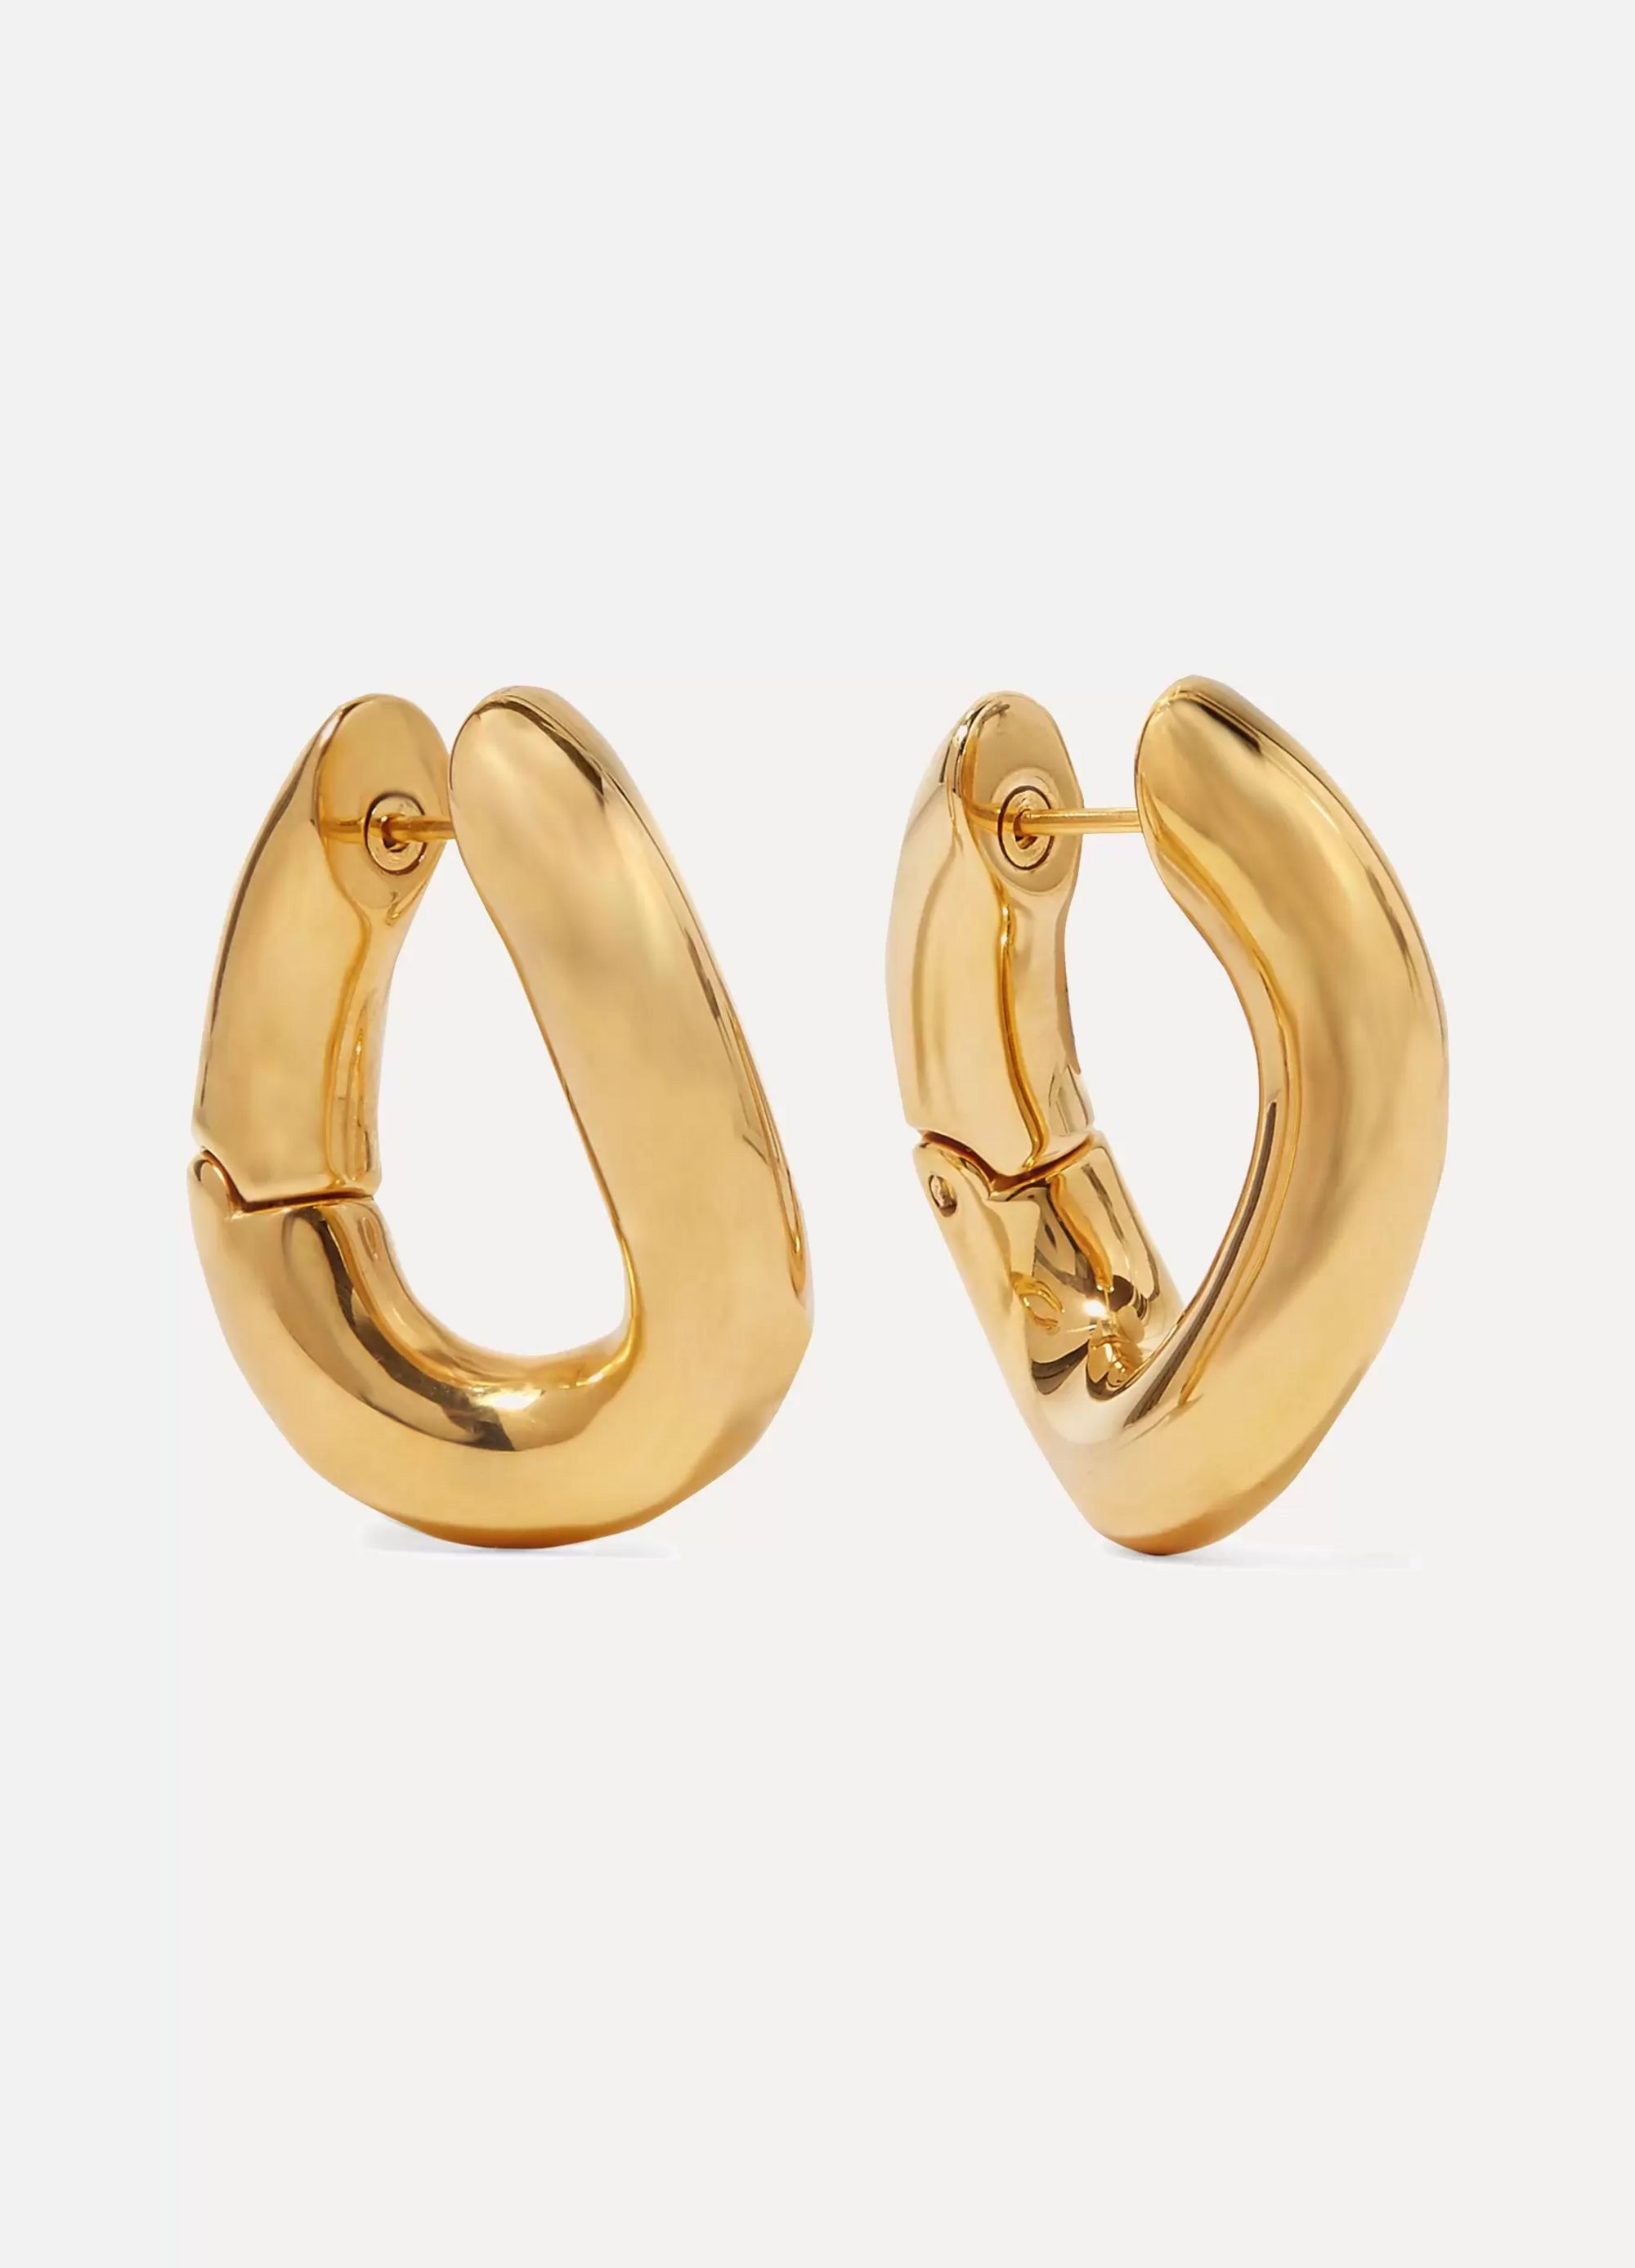 Balenciaga Gold-tone hoop earrings